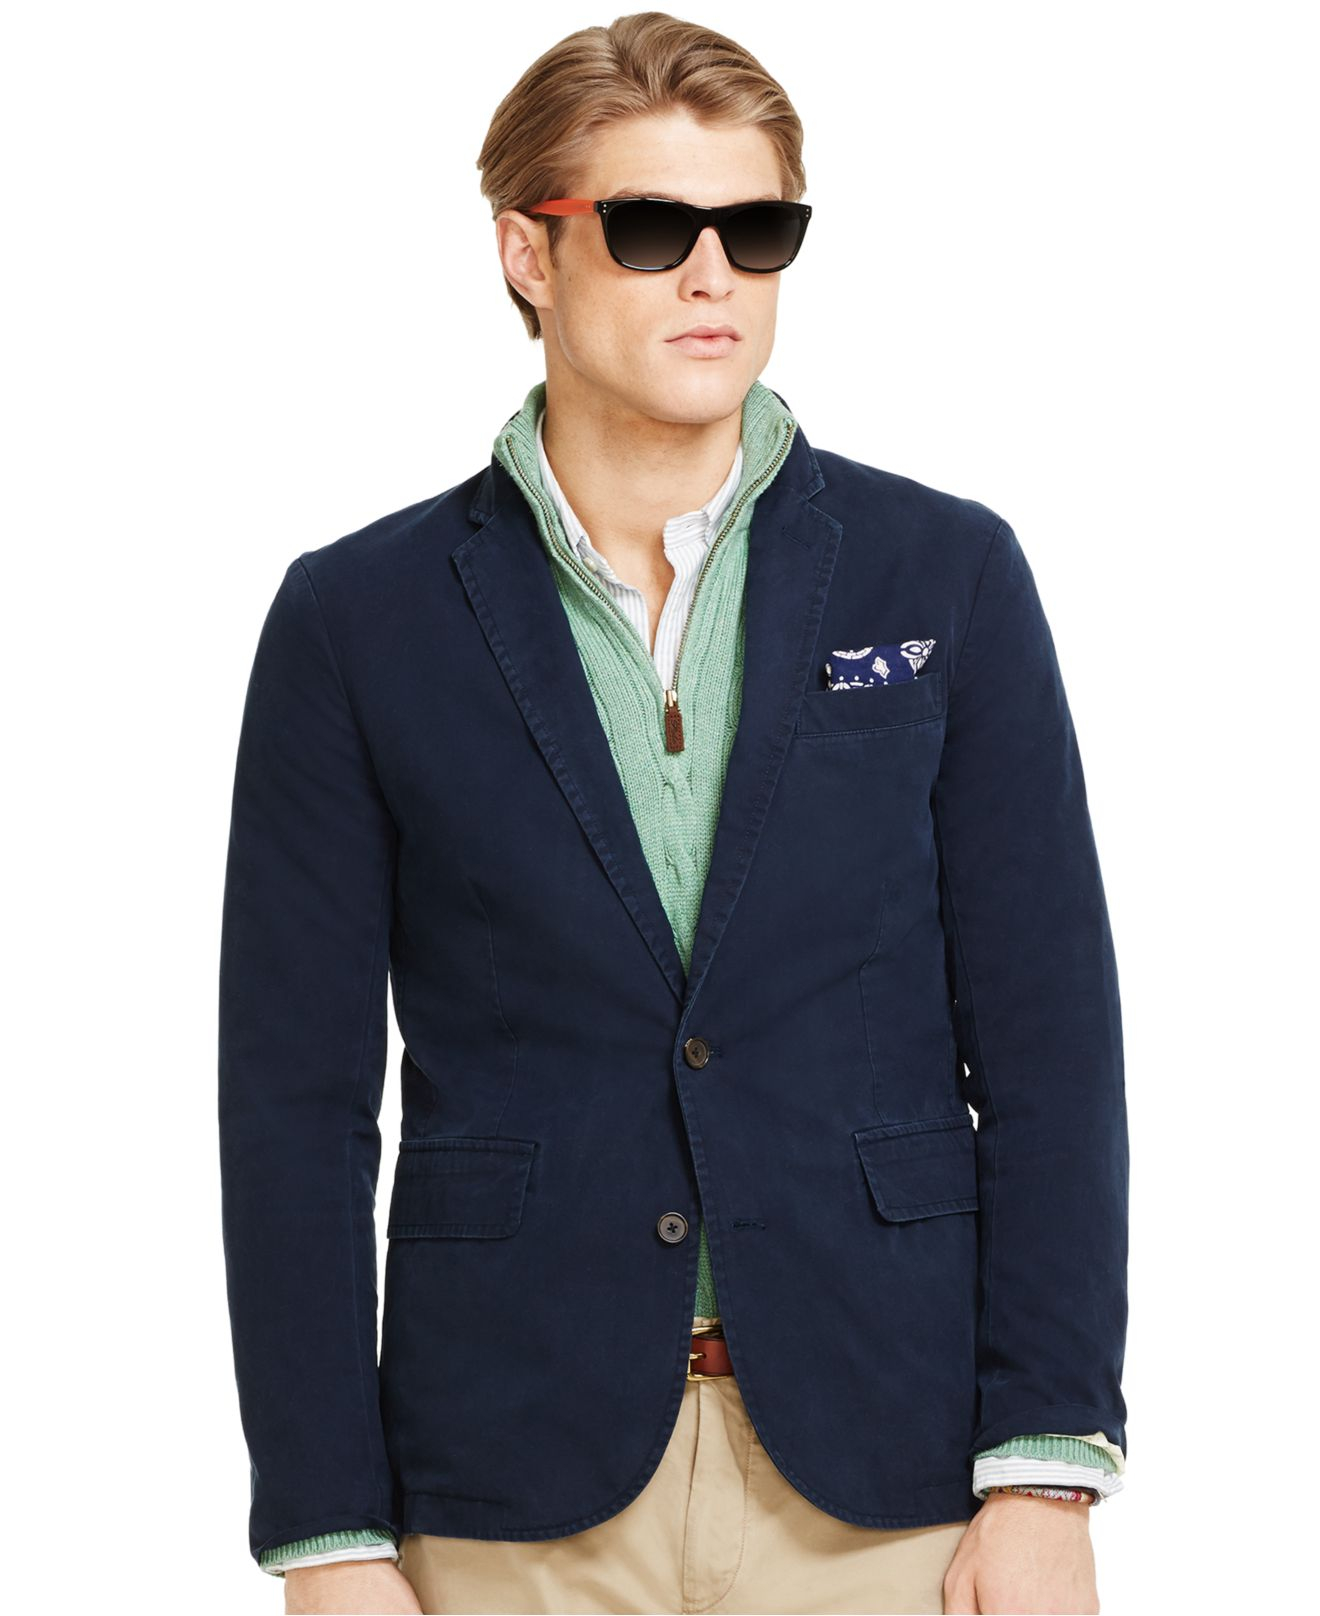 Polo ralph lauren chino sport coat in blue for men lyst for Polo shirt with sport coat